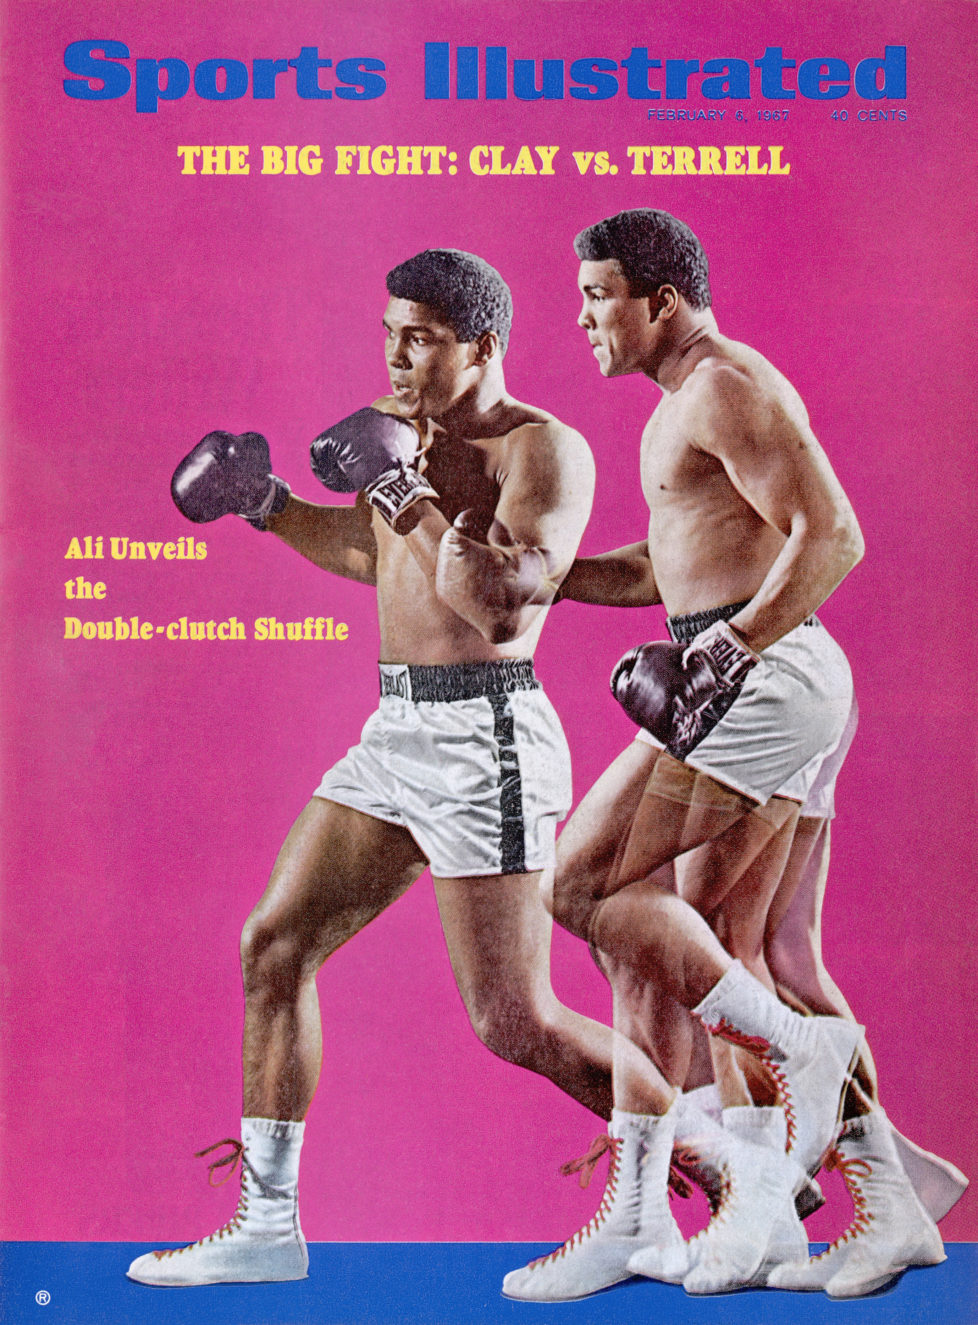 February 6, 1967 Sports Illustrated Cover: Heavyweight Boxing: Multiple exposure portrait of Muhammad Ali demonstrating Ali Double-Clutch Shuffle during photo shoot at Life Studios. New York, NY 12/30/1966 CREDIT: Neil Leifer (Photo by Neil Leifer /Sports Illustrated/Getty Images) (Set Number: X12118 )